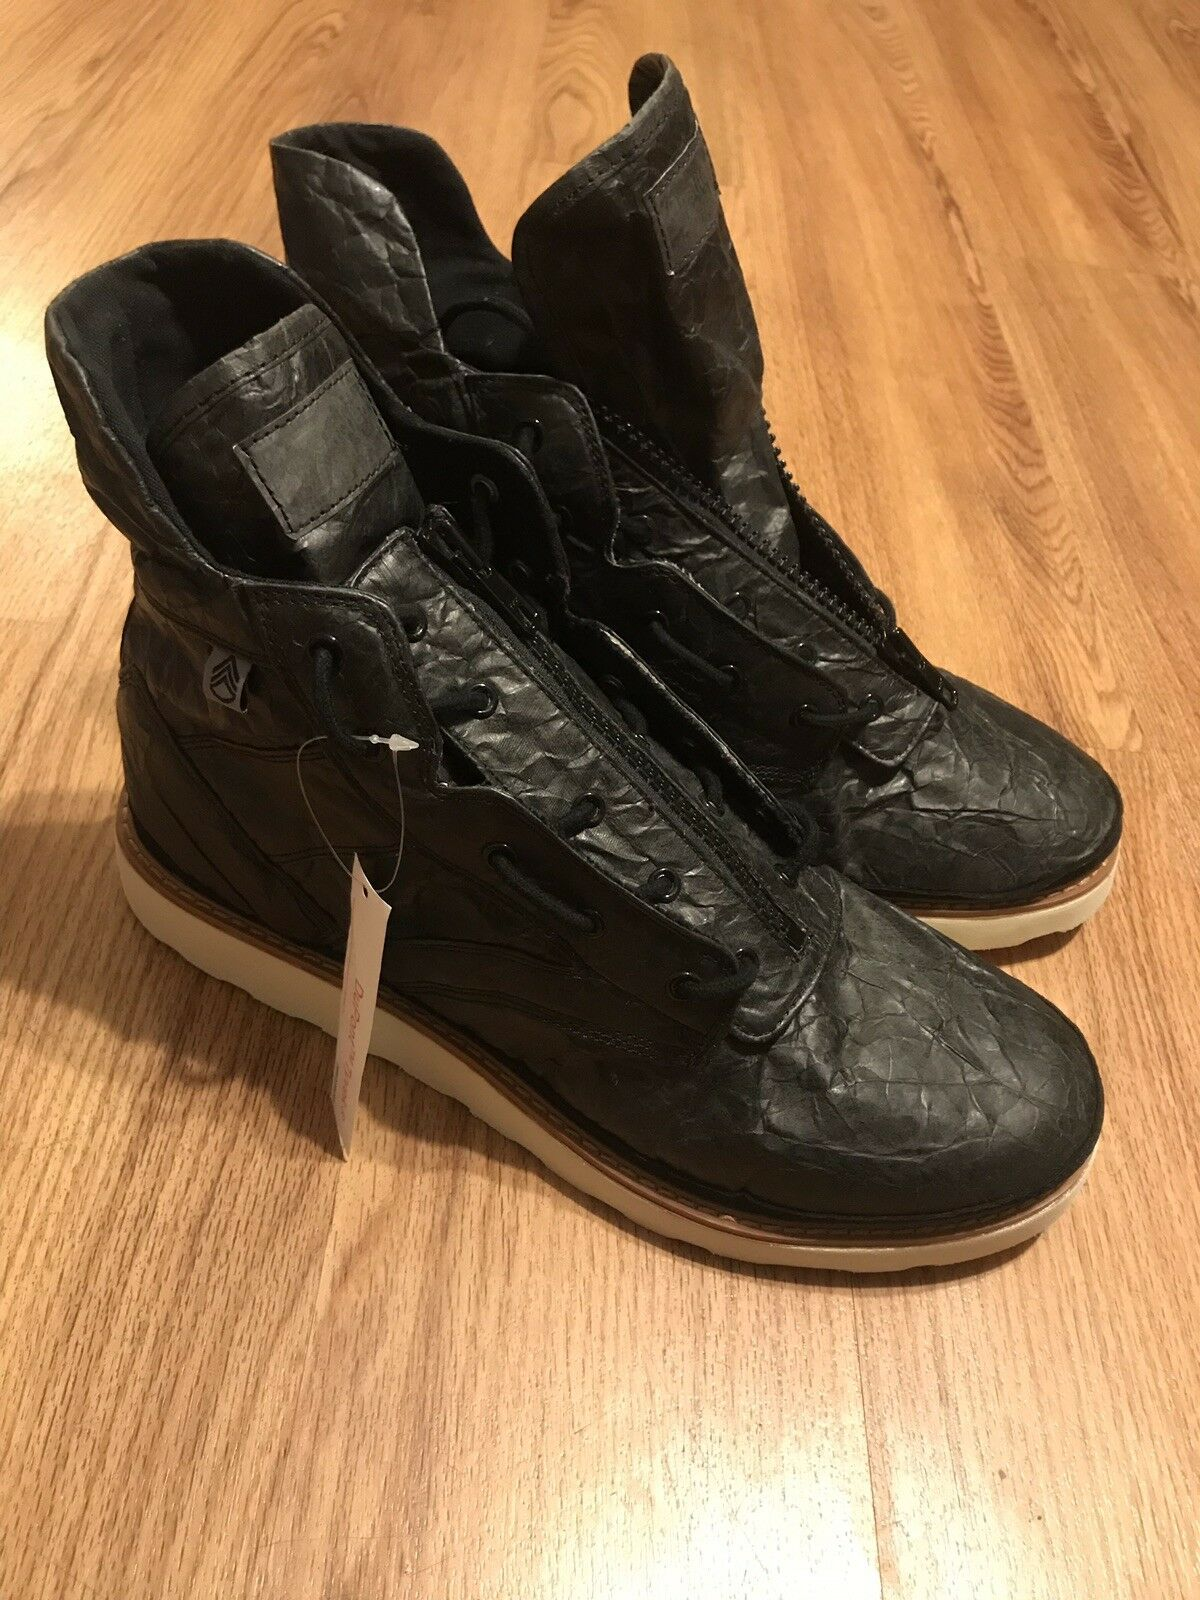 DuPont- Unstitched Utilities Boots Size 11